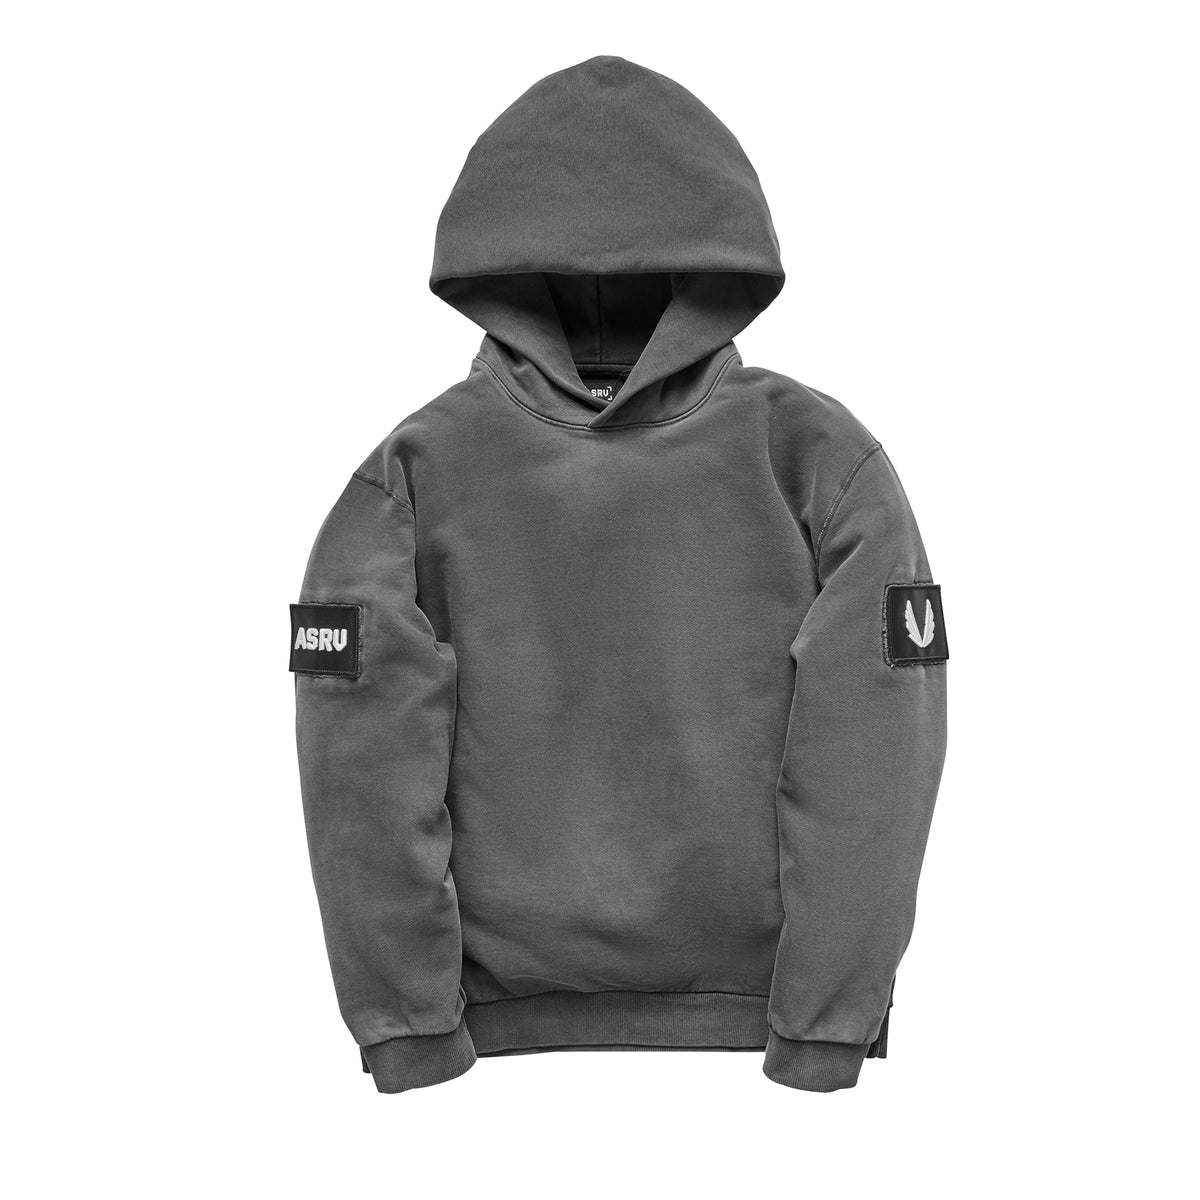 0302. Garment-Dyed Patch Hoodie - Faded Grey